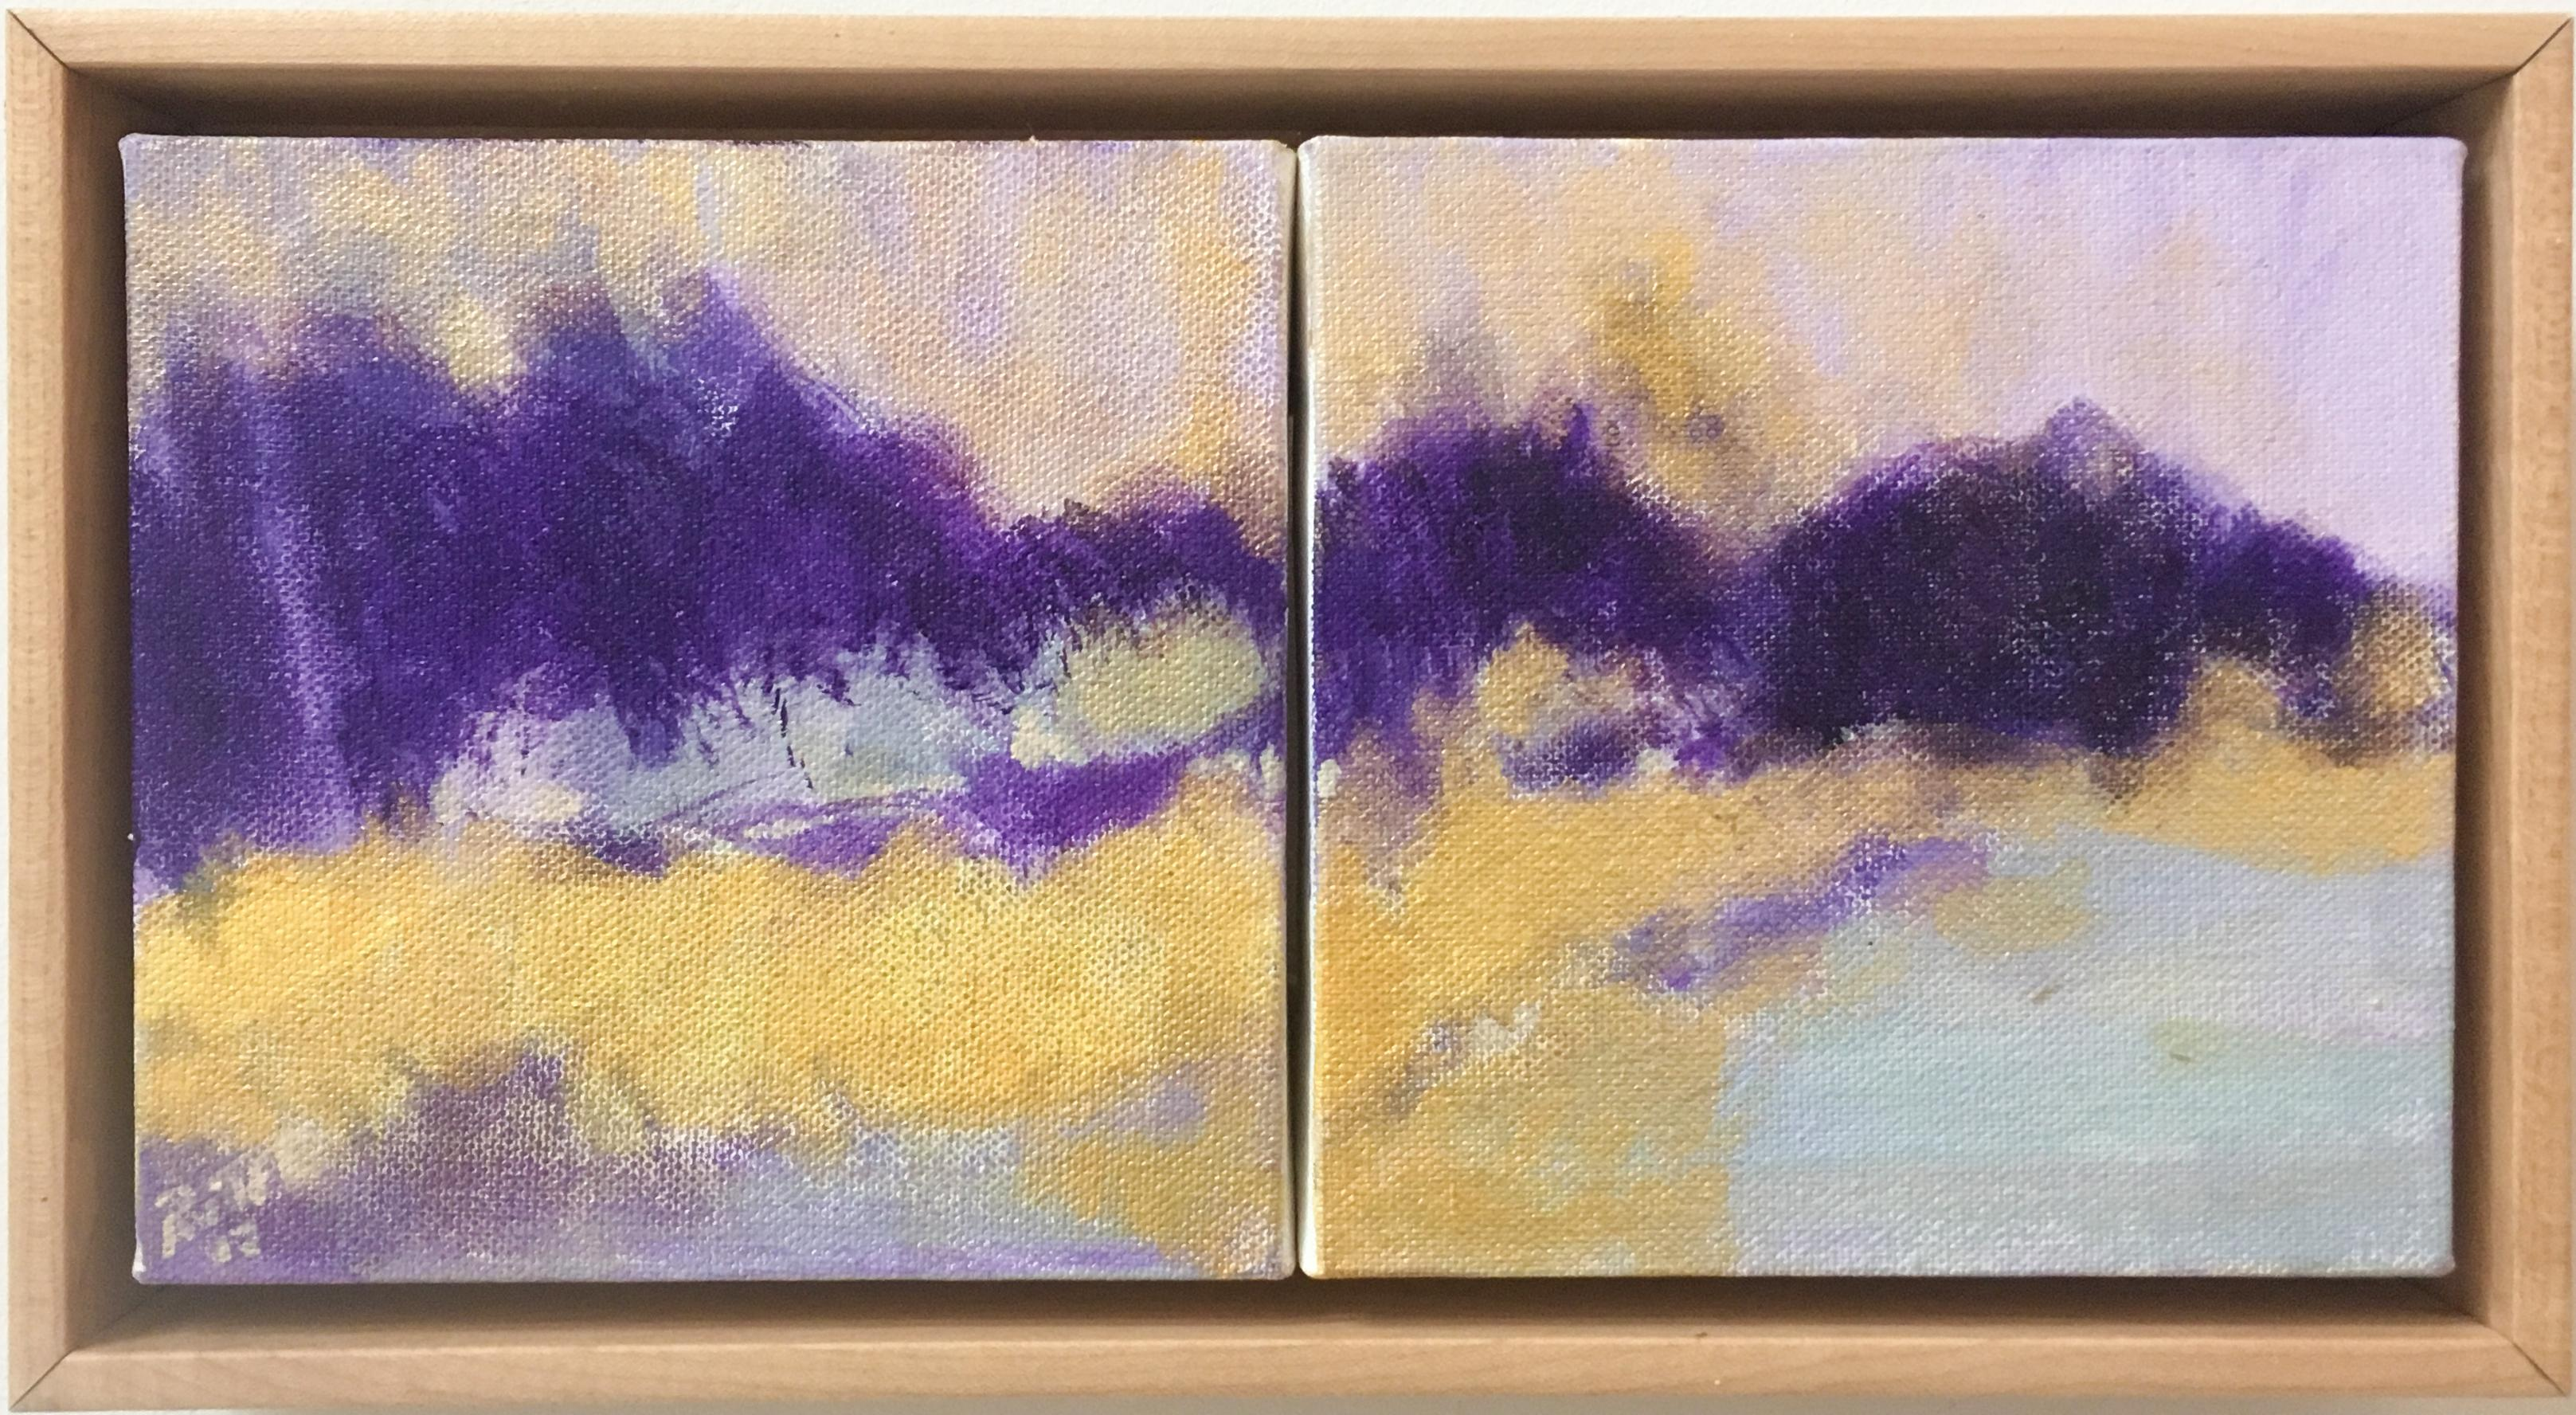 Violet Hills (Abstract Landscape Painting in Yellow & Purple with Wood Frame)